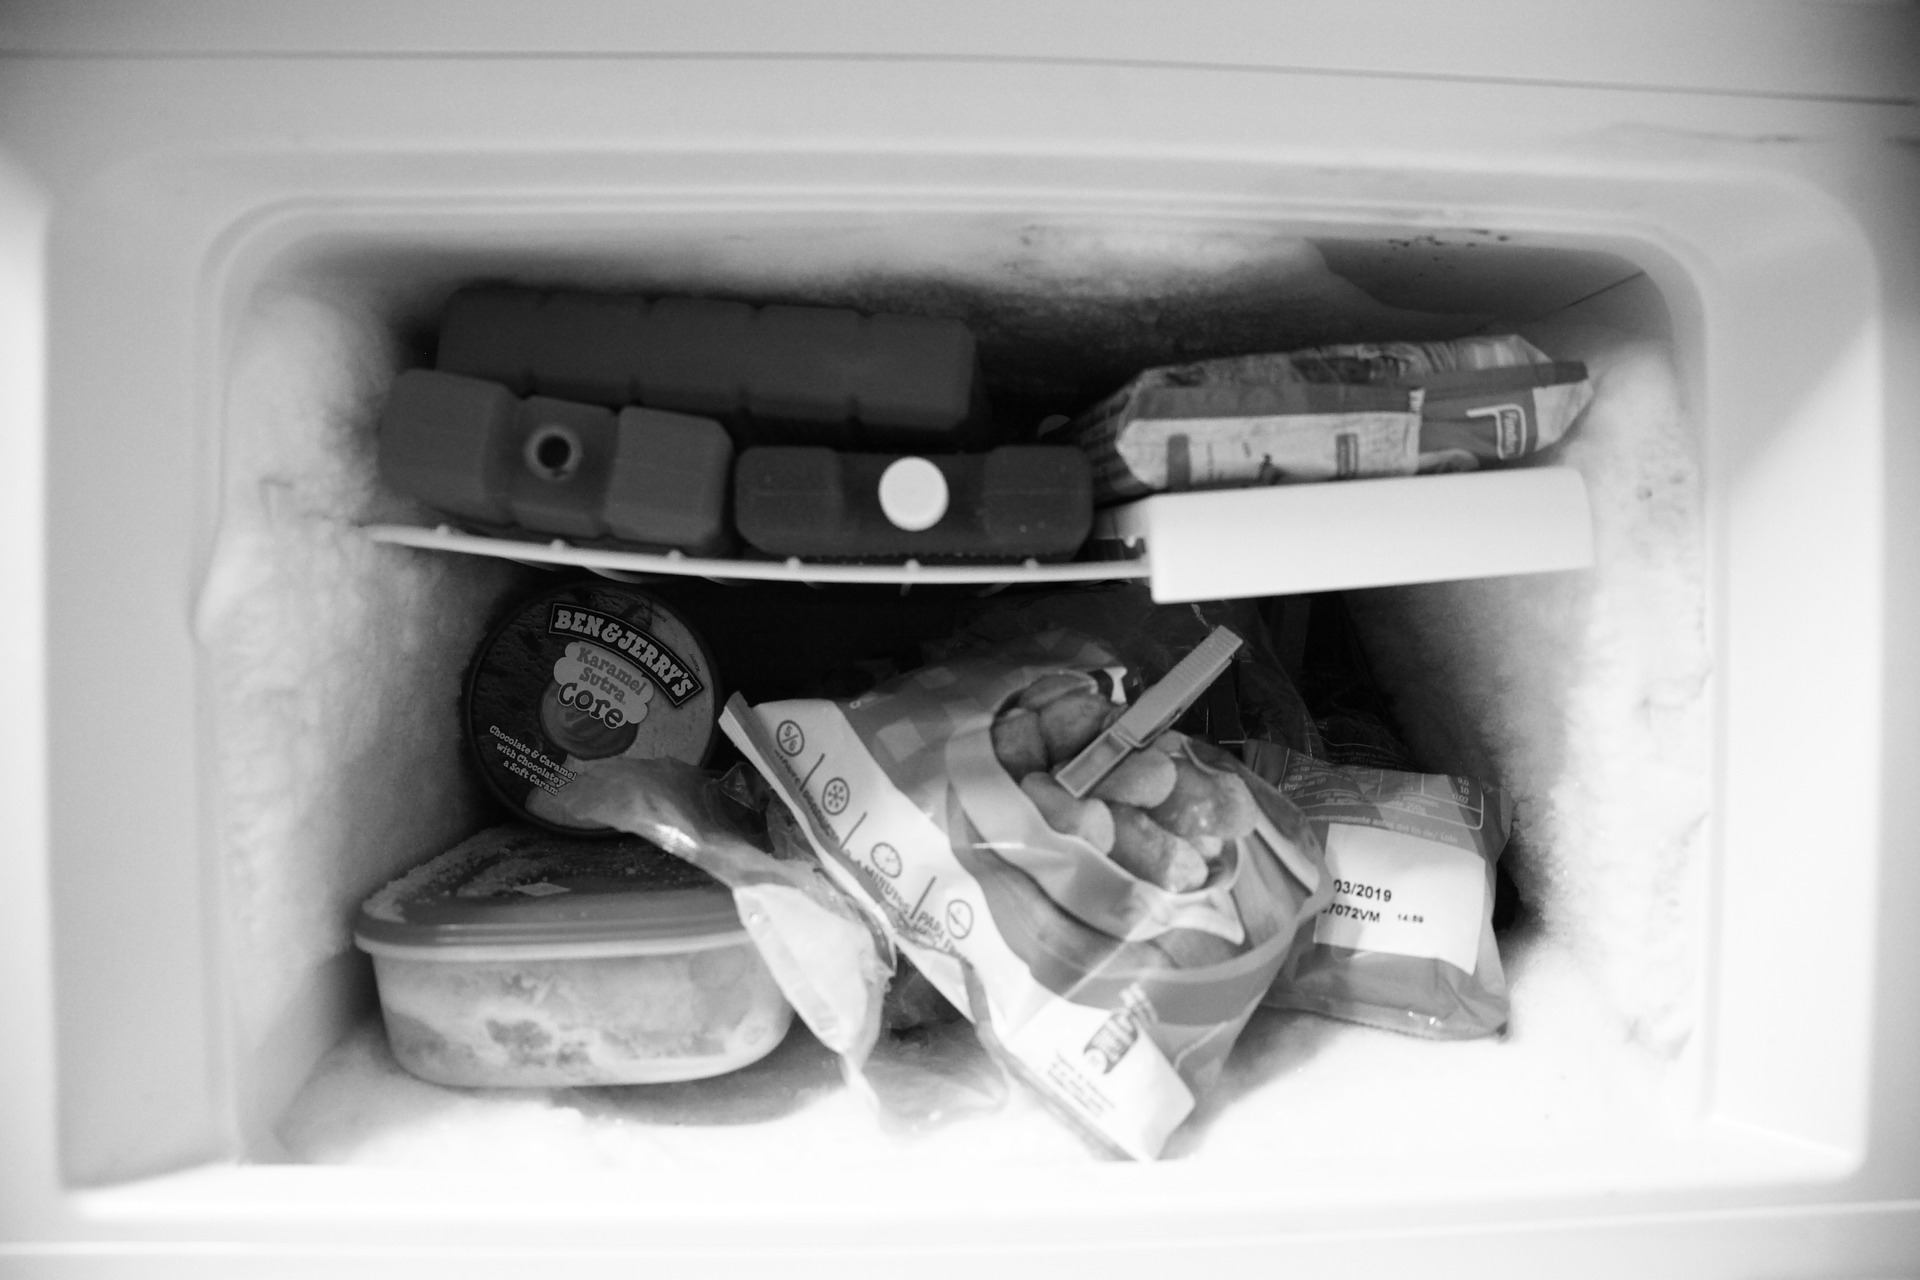 Staples in my freezer